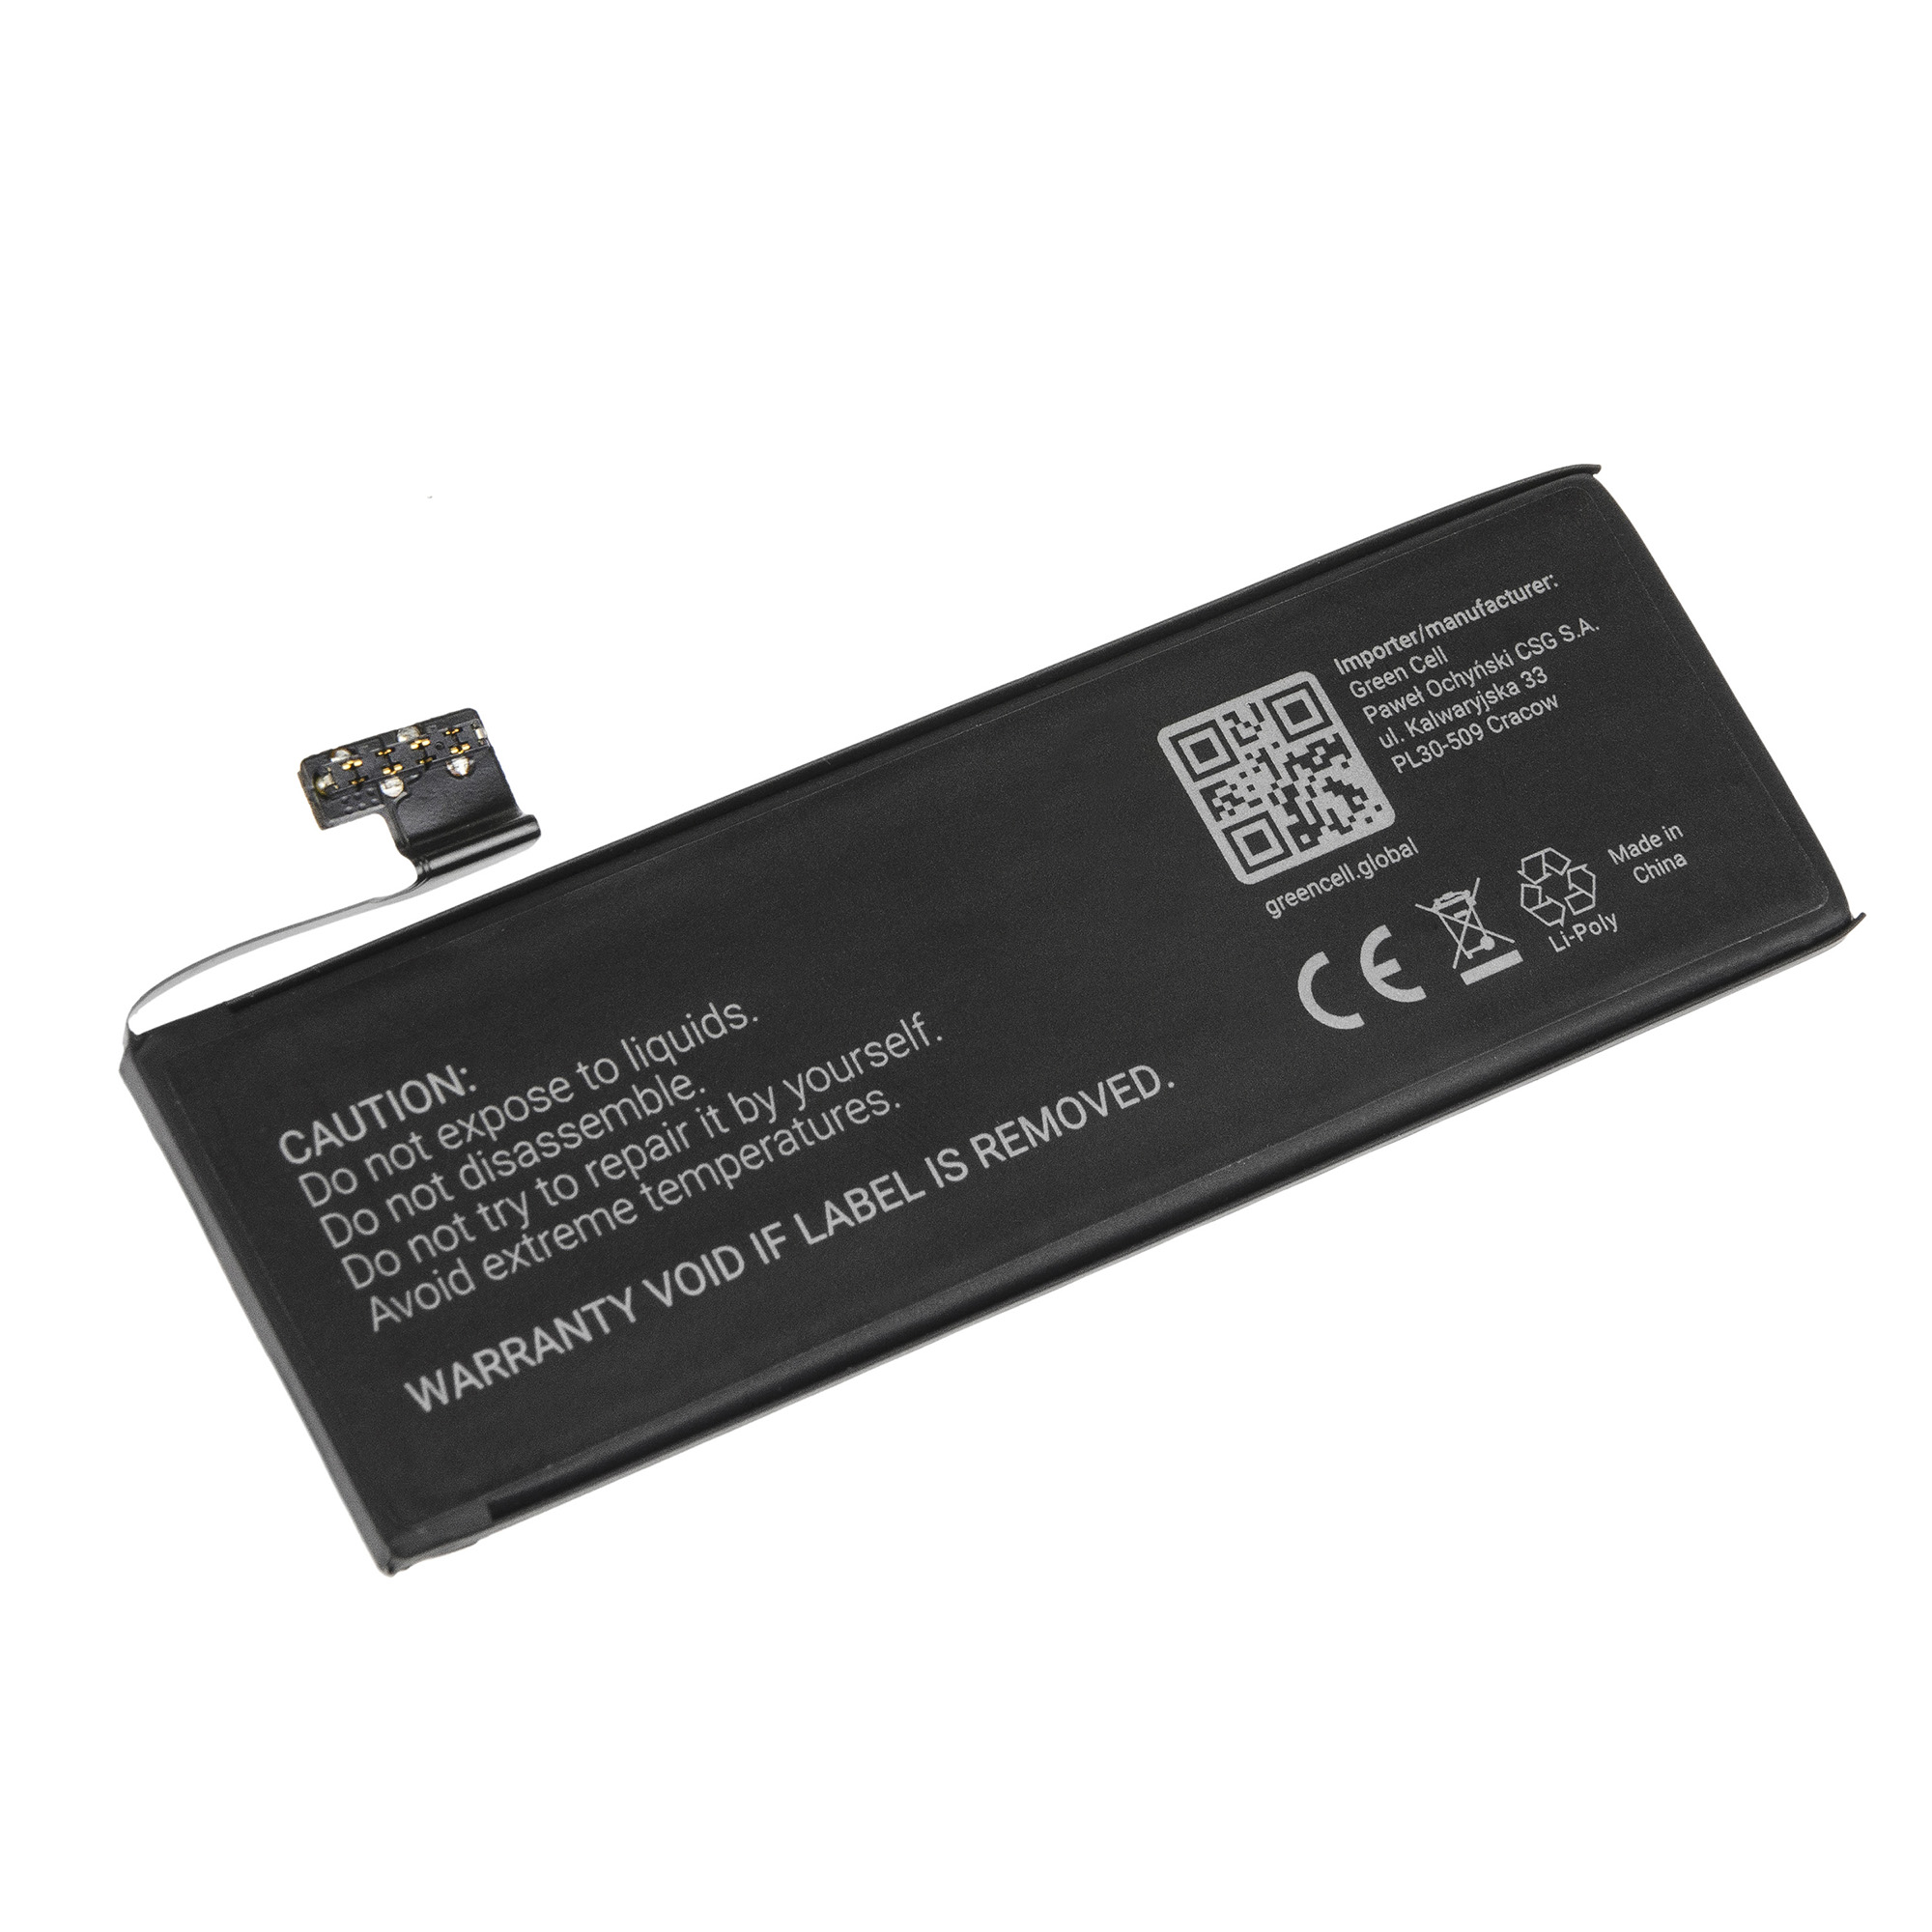 Battery for Apple iPhone 5 16GB 32GB 64GB A1428 A1429 ...